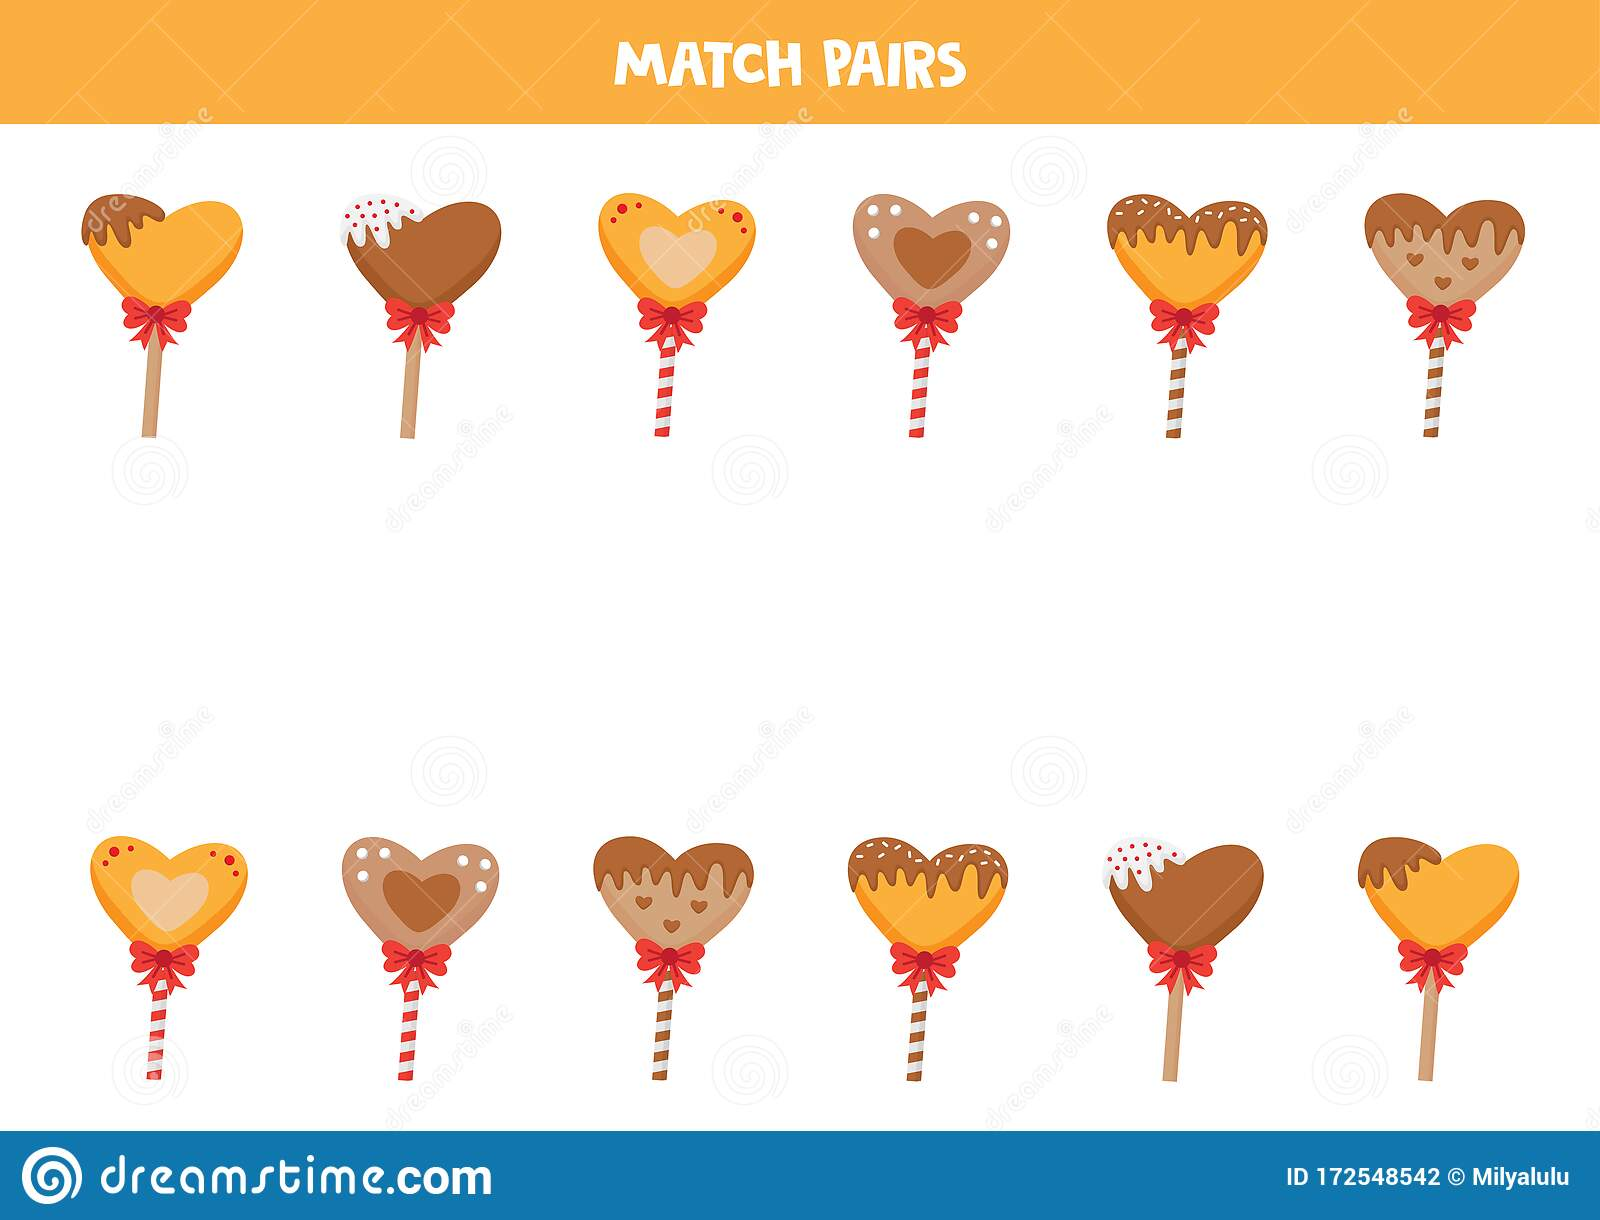 Match Pairs Of Cartoon Heart Lollipops Valentine Day